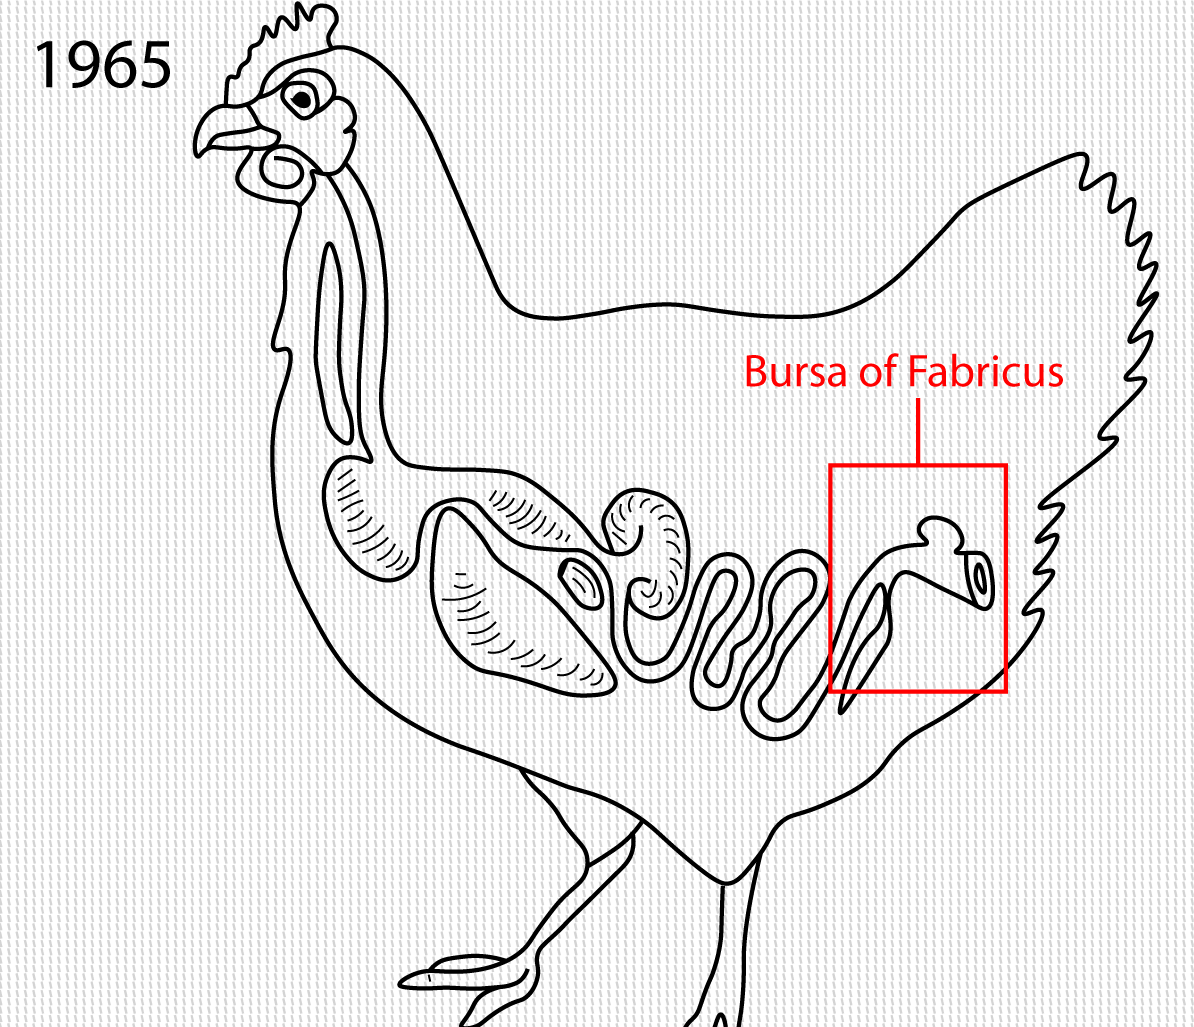 Bursa of Fabricus